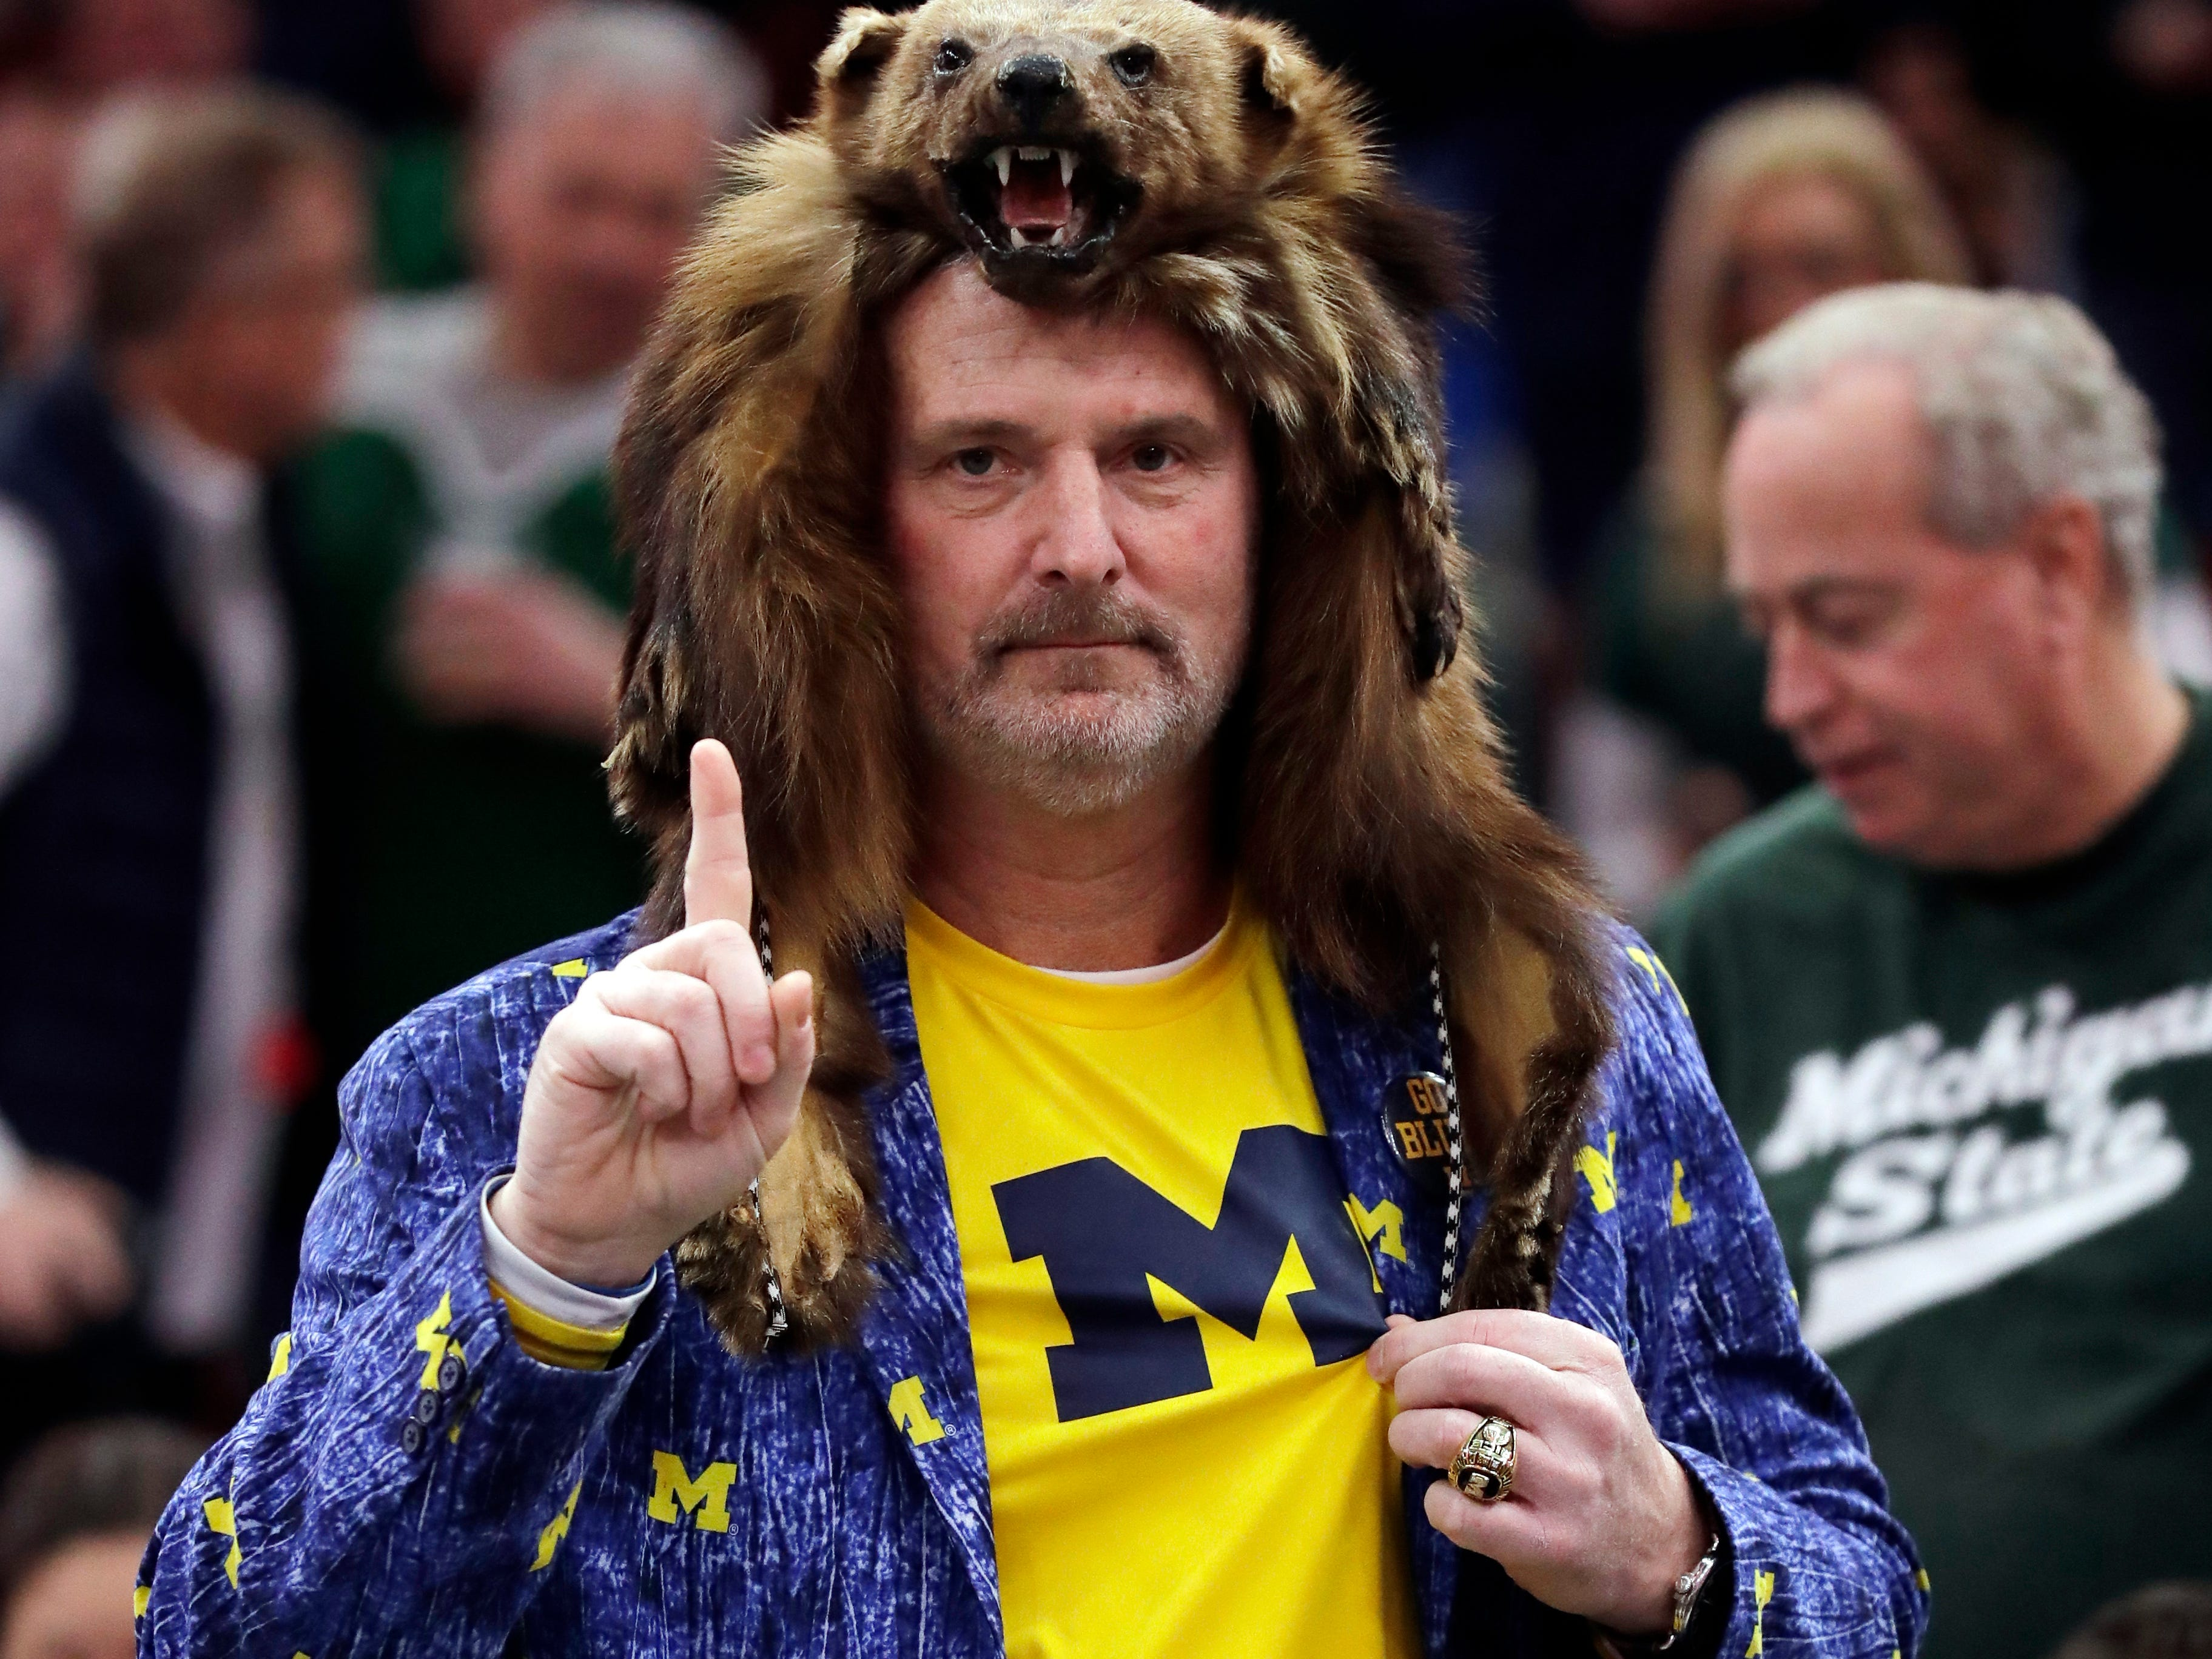 A Michigan fan cheers before an NCAA college basketball championship game between Michigan State and Michigan in the Big Ten Conference tournament, Sunday, March 17, 2019, in Chicago.